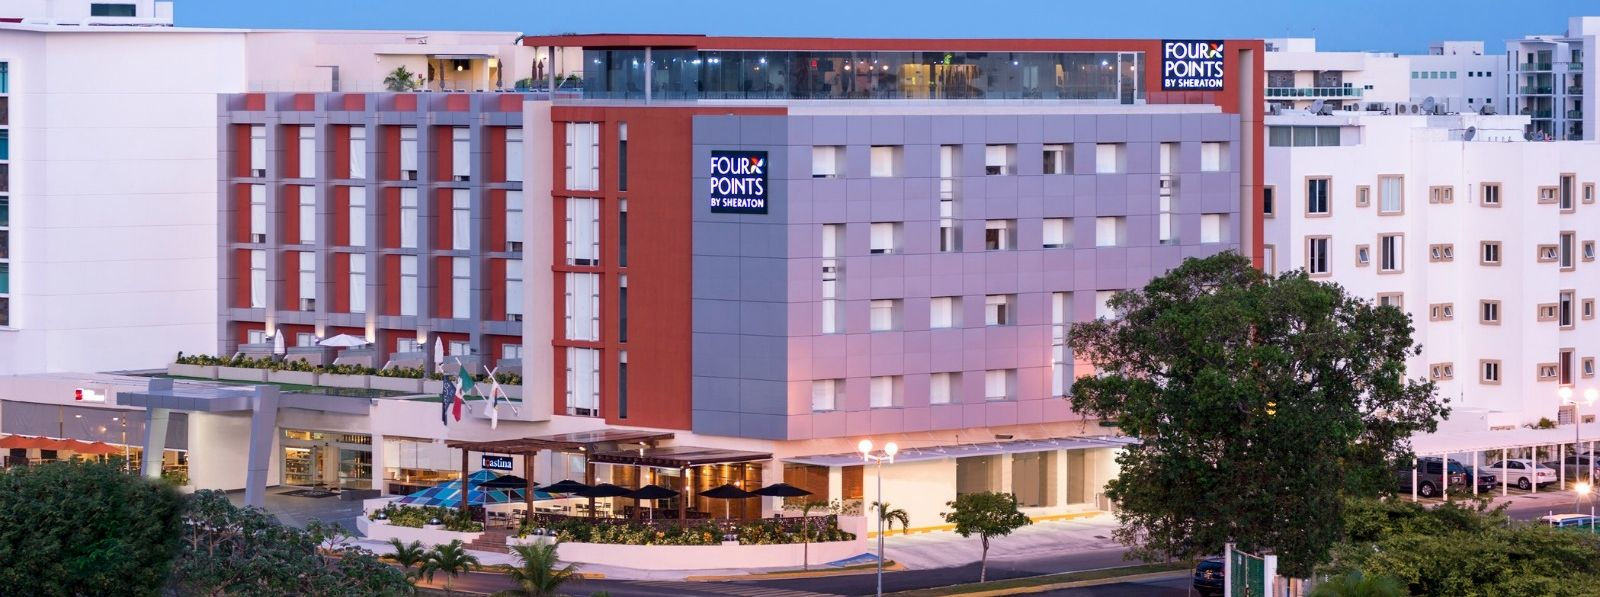 Hotel Near Cancun Airport - Four Point by Sheraton Cancun Centro